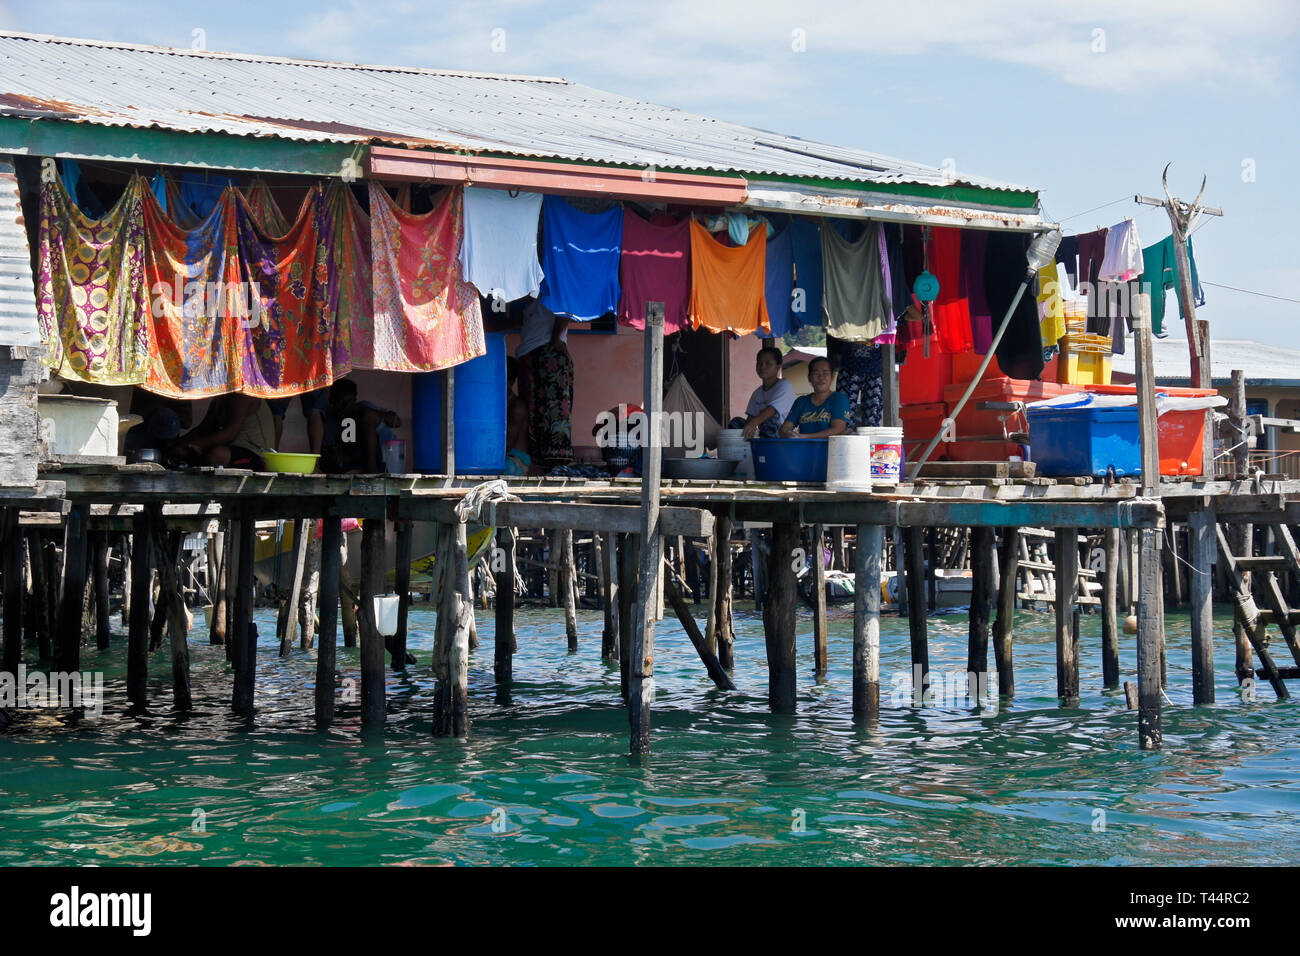 Dwellings built on stilts in South China Sea near Kota Kinabalu, Sabah (Borneo), Malaysia - Stock Image